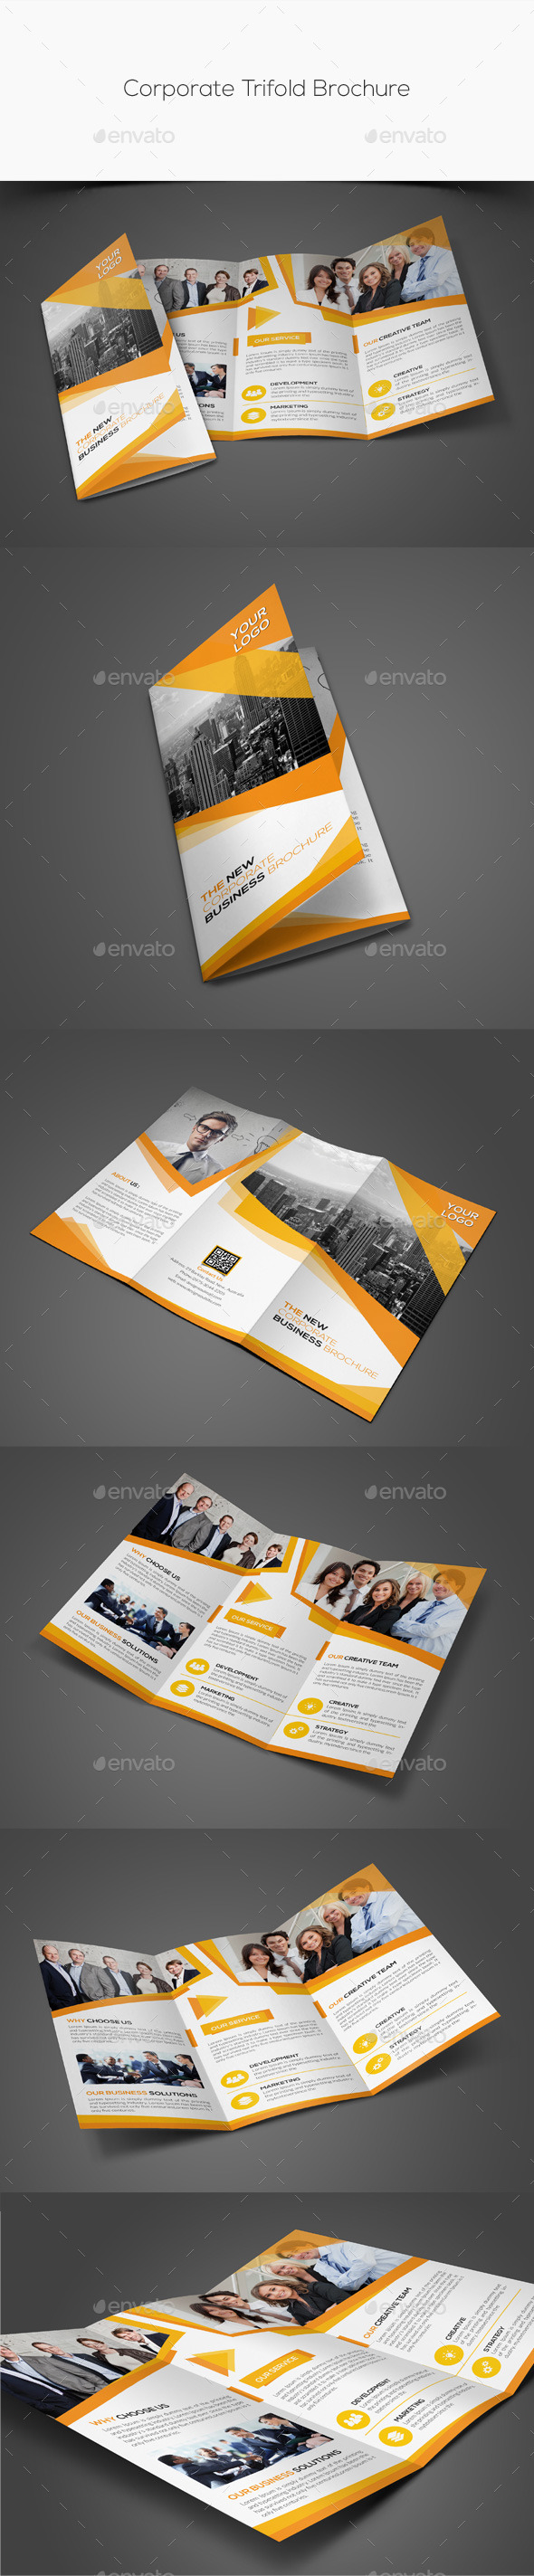 GraphicRiver Corporate Trifold Brochure 11439119